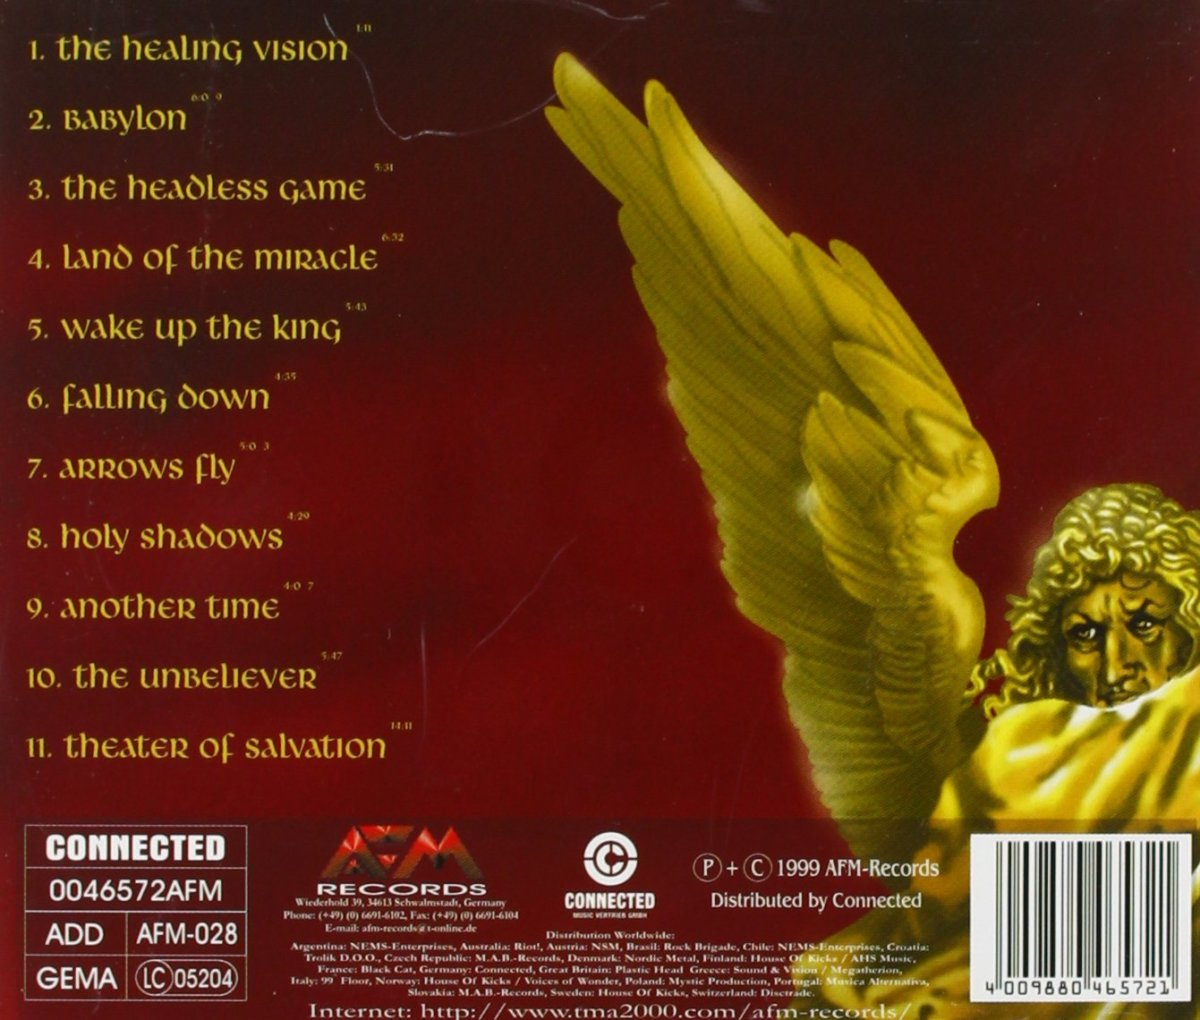 The back of the cover for Theater of Salvation has an angel on it who is depicted as coming to save the world from the forces of evil.